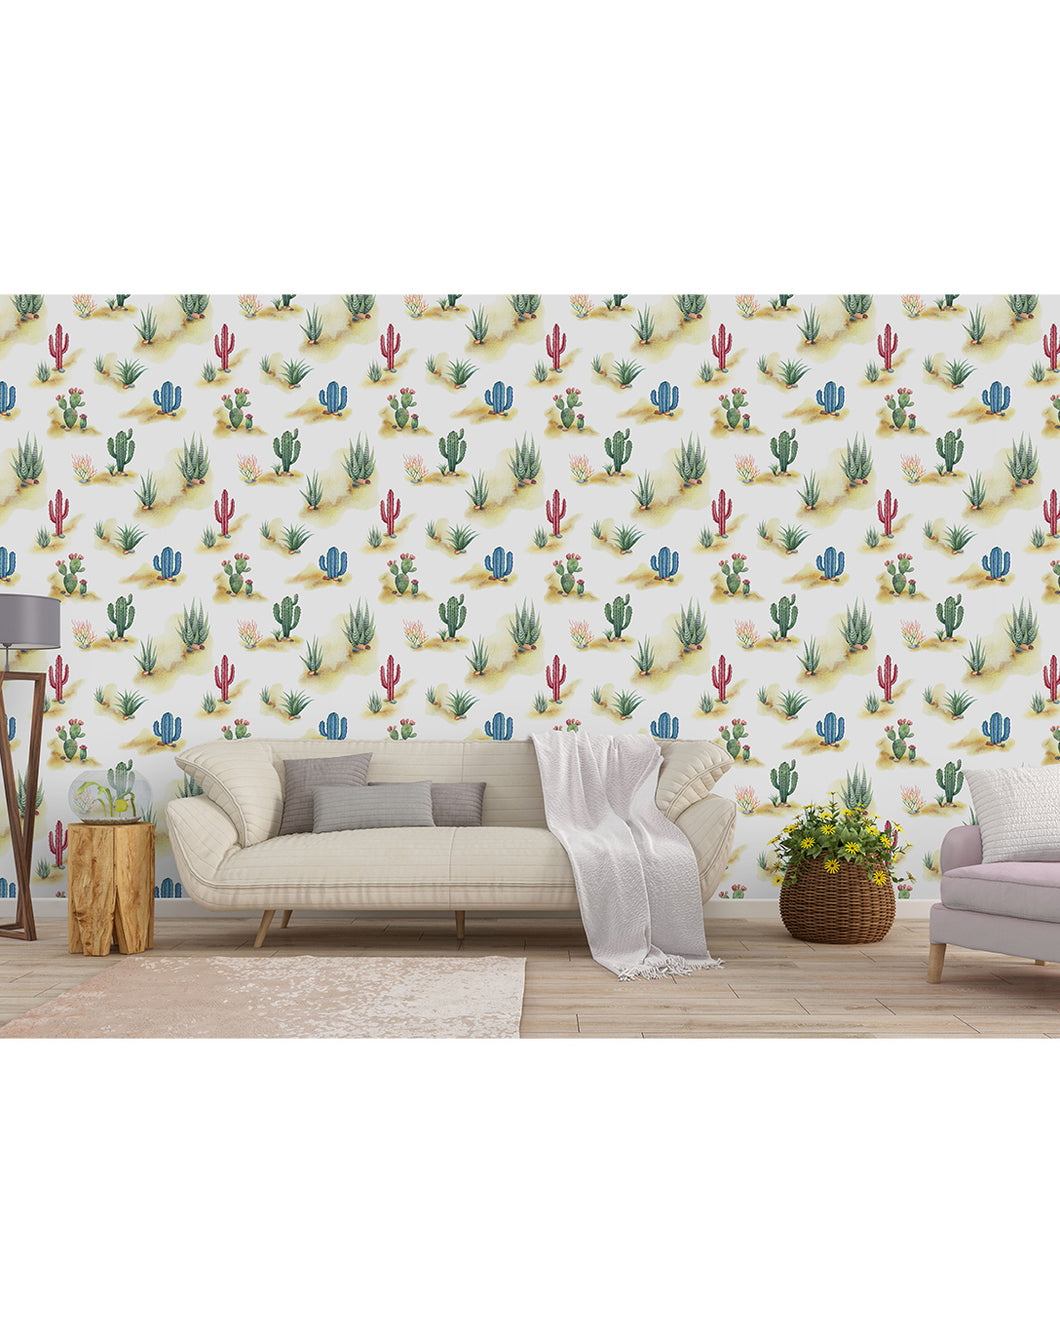 Self Adhesive Watercolor Desert Cactus Landscape Removable Wallpaper Costacover